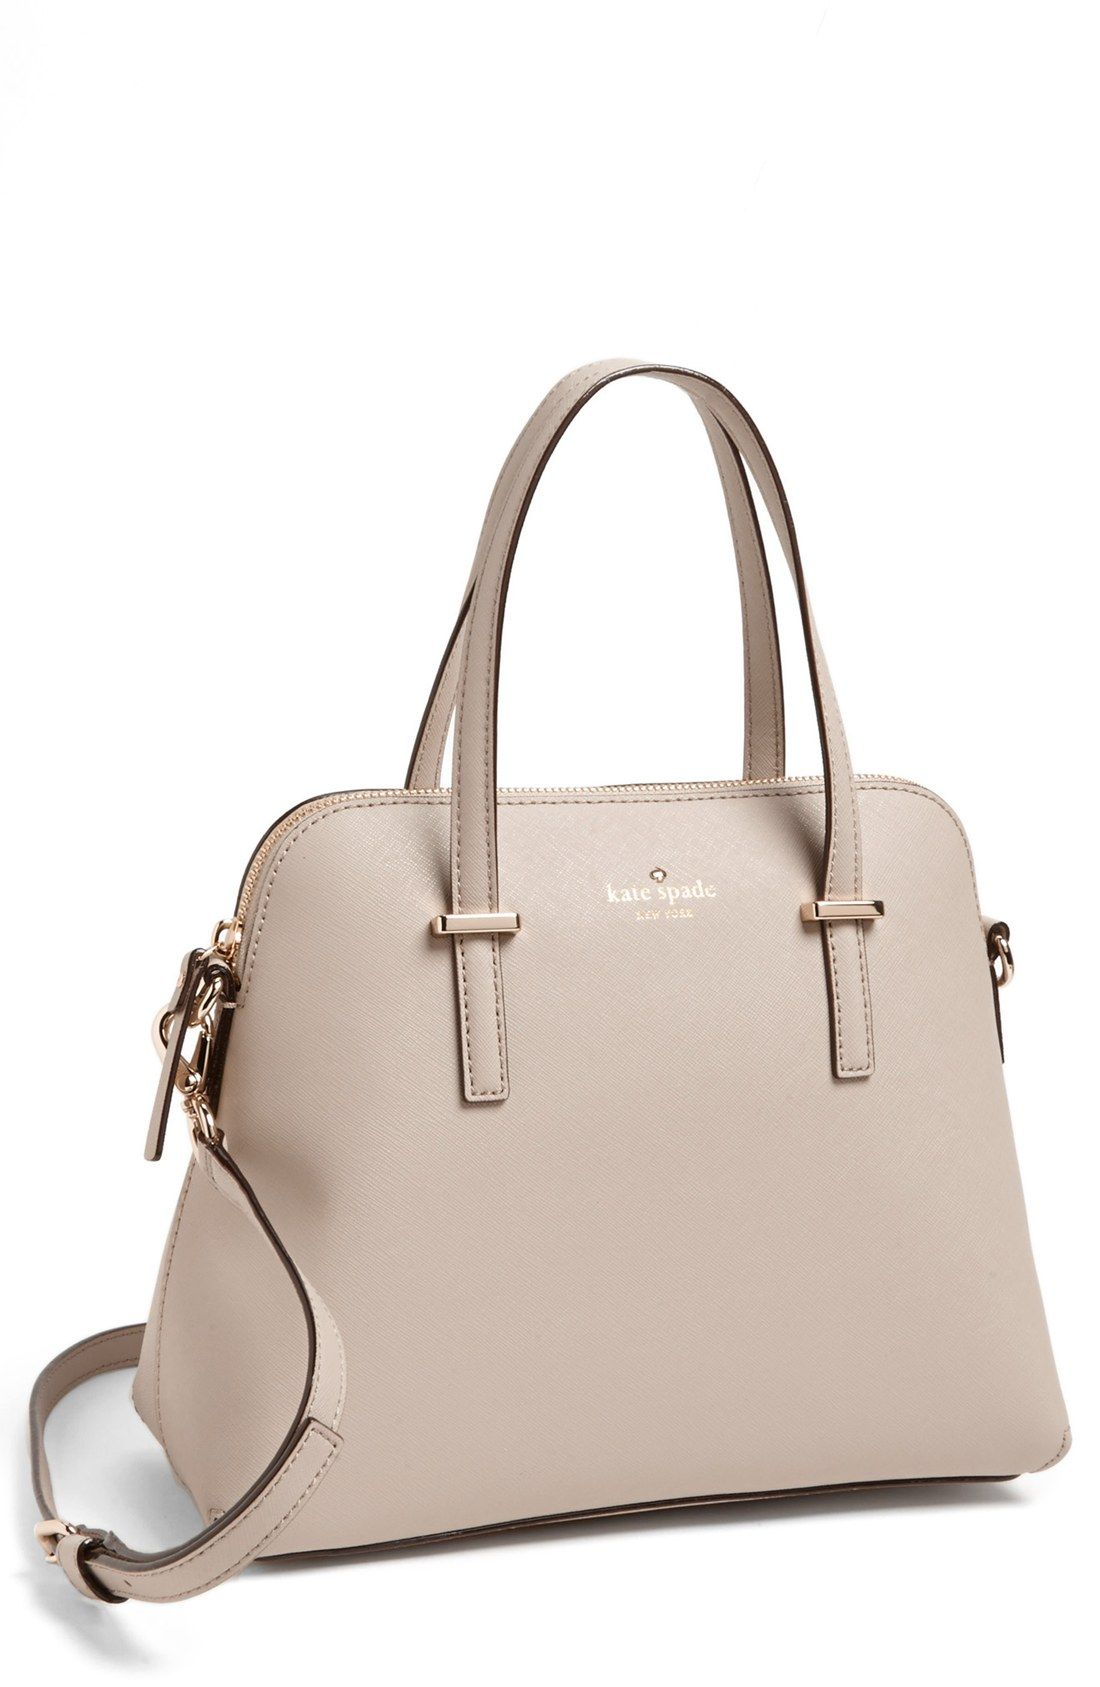 This Pretty Beige Kate Spade Satchel Is Going On The Wishlist